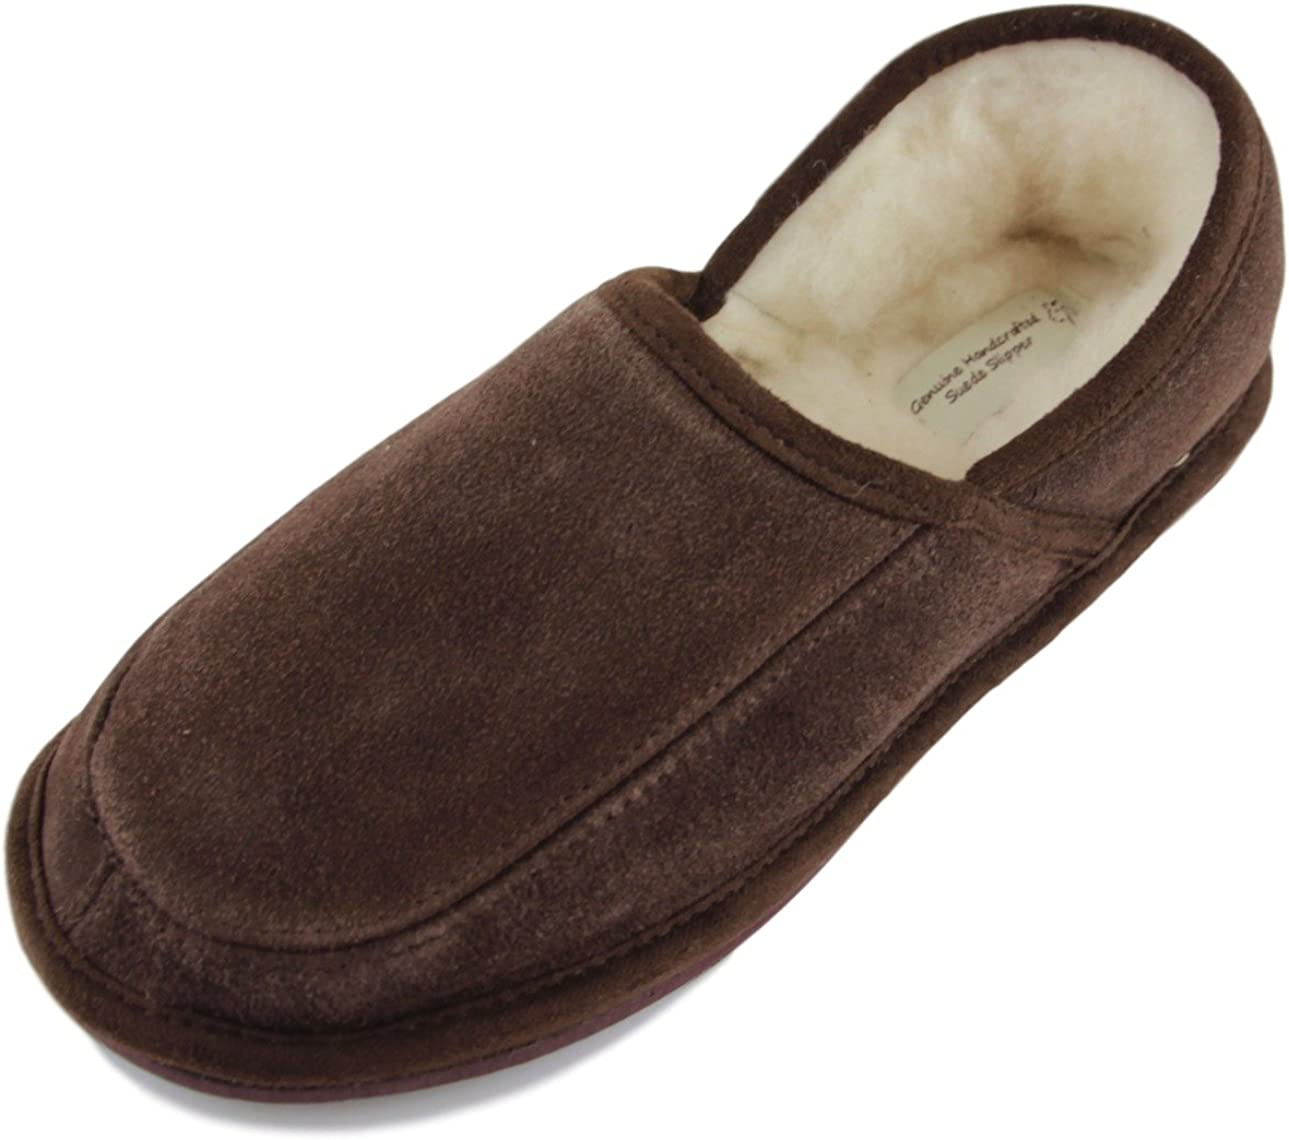 Wome Slipper Shoes Mule Suede Leather Wool Hand Made Size3-8